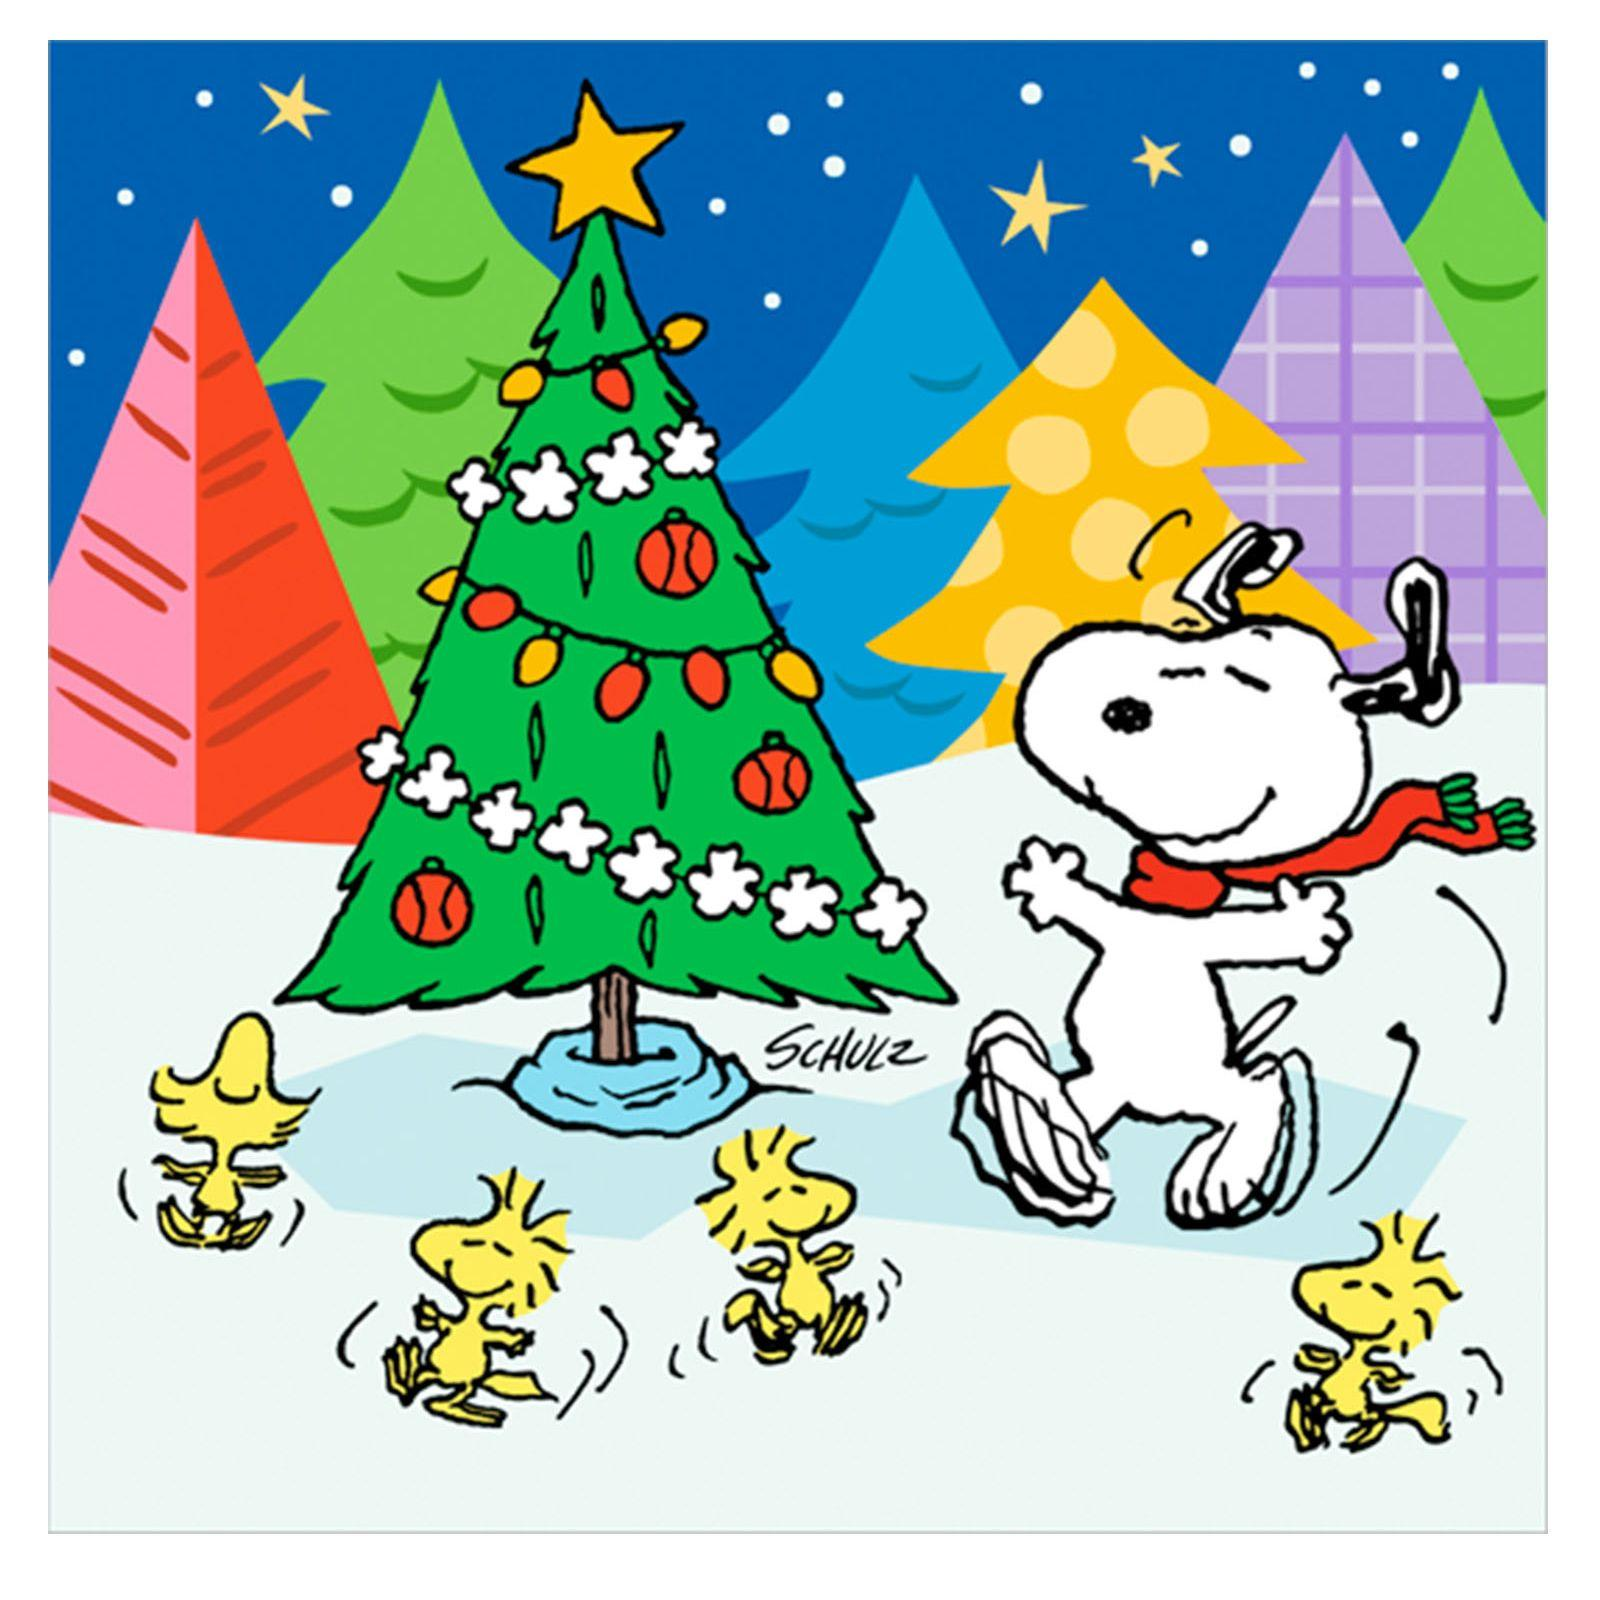 Peanut Christmas Tree: Peanuts Christmas Wallpapers